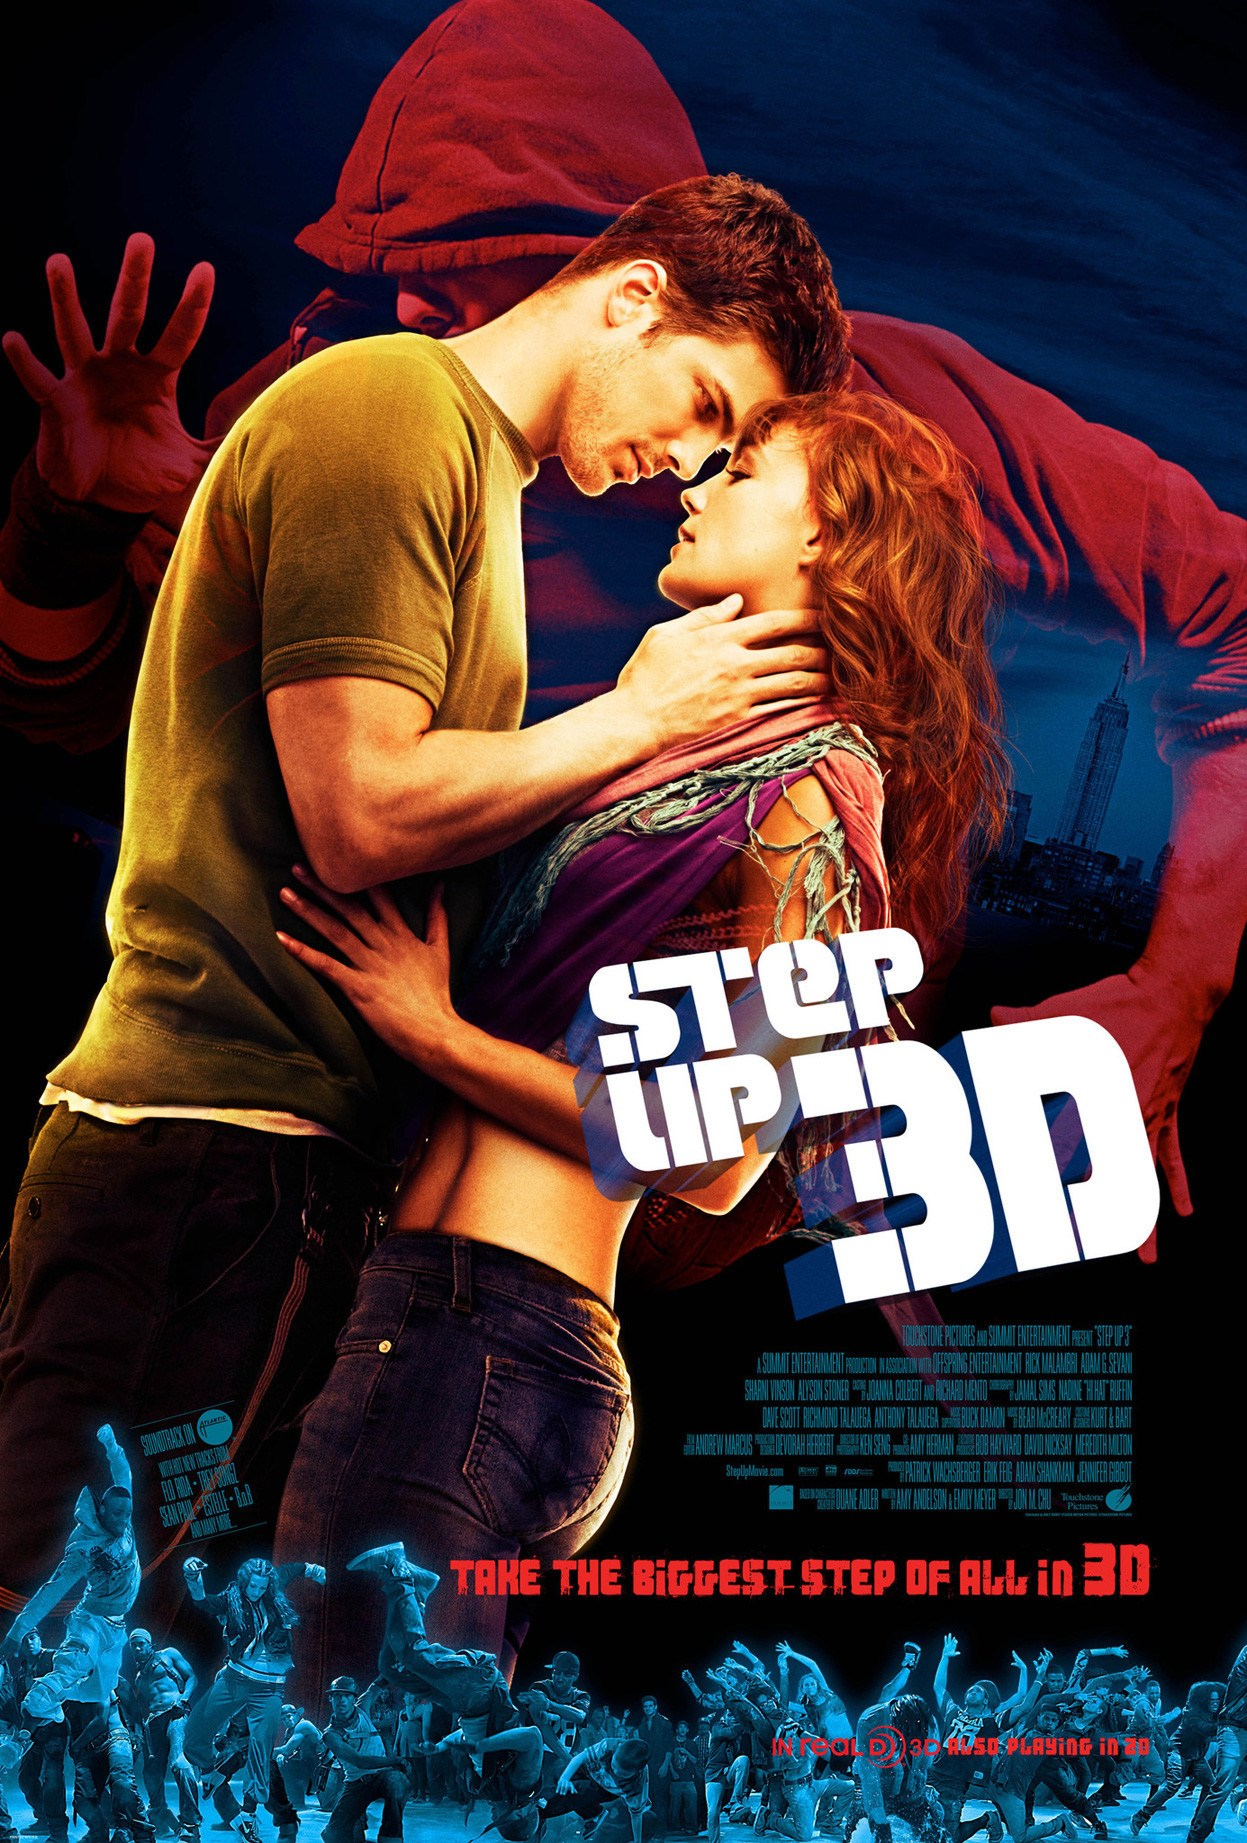 Step Up Steps: Subtitles For Step Up 3D